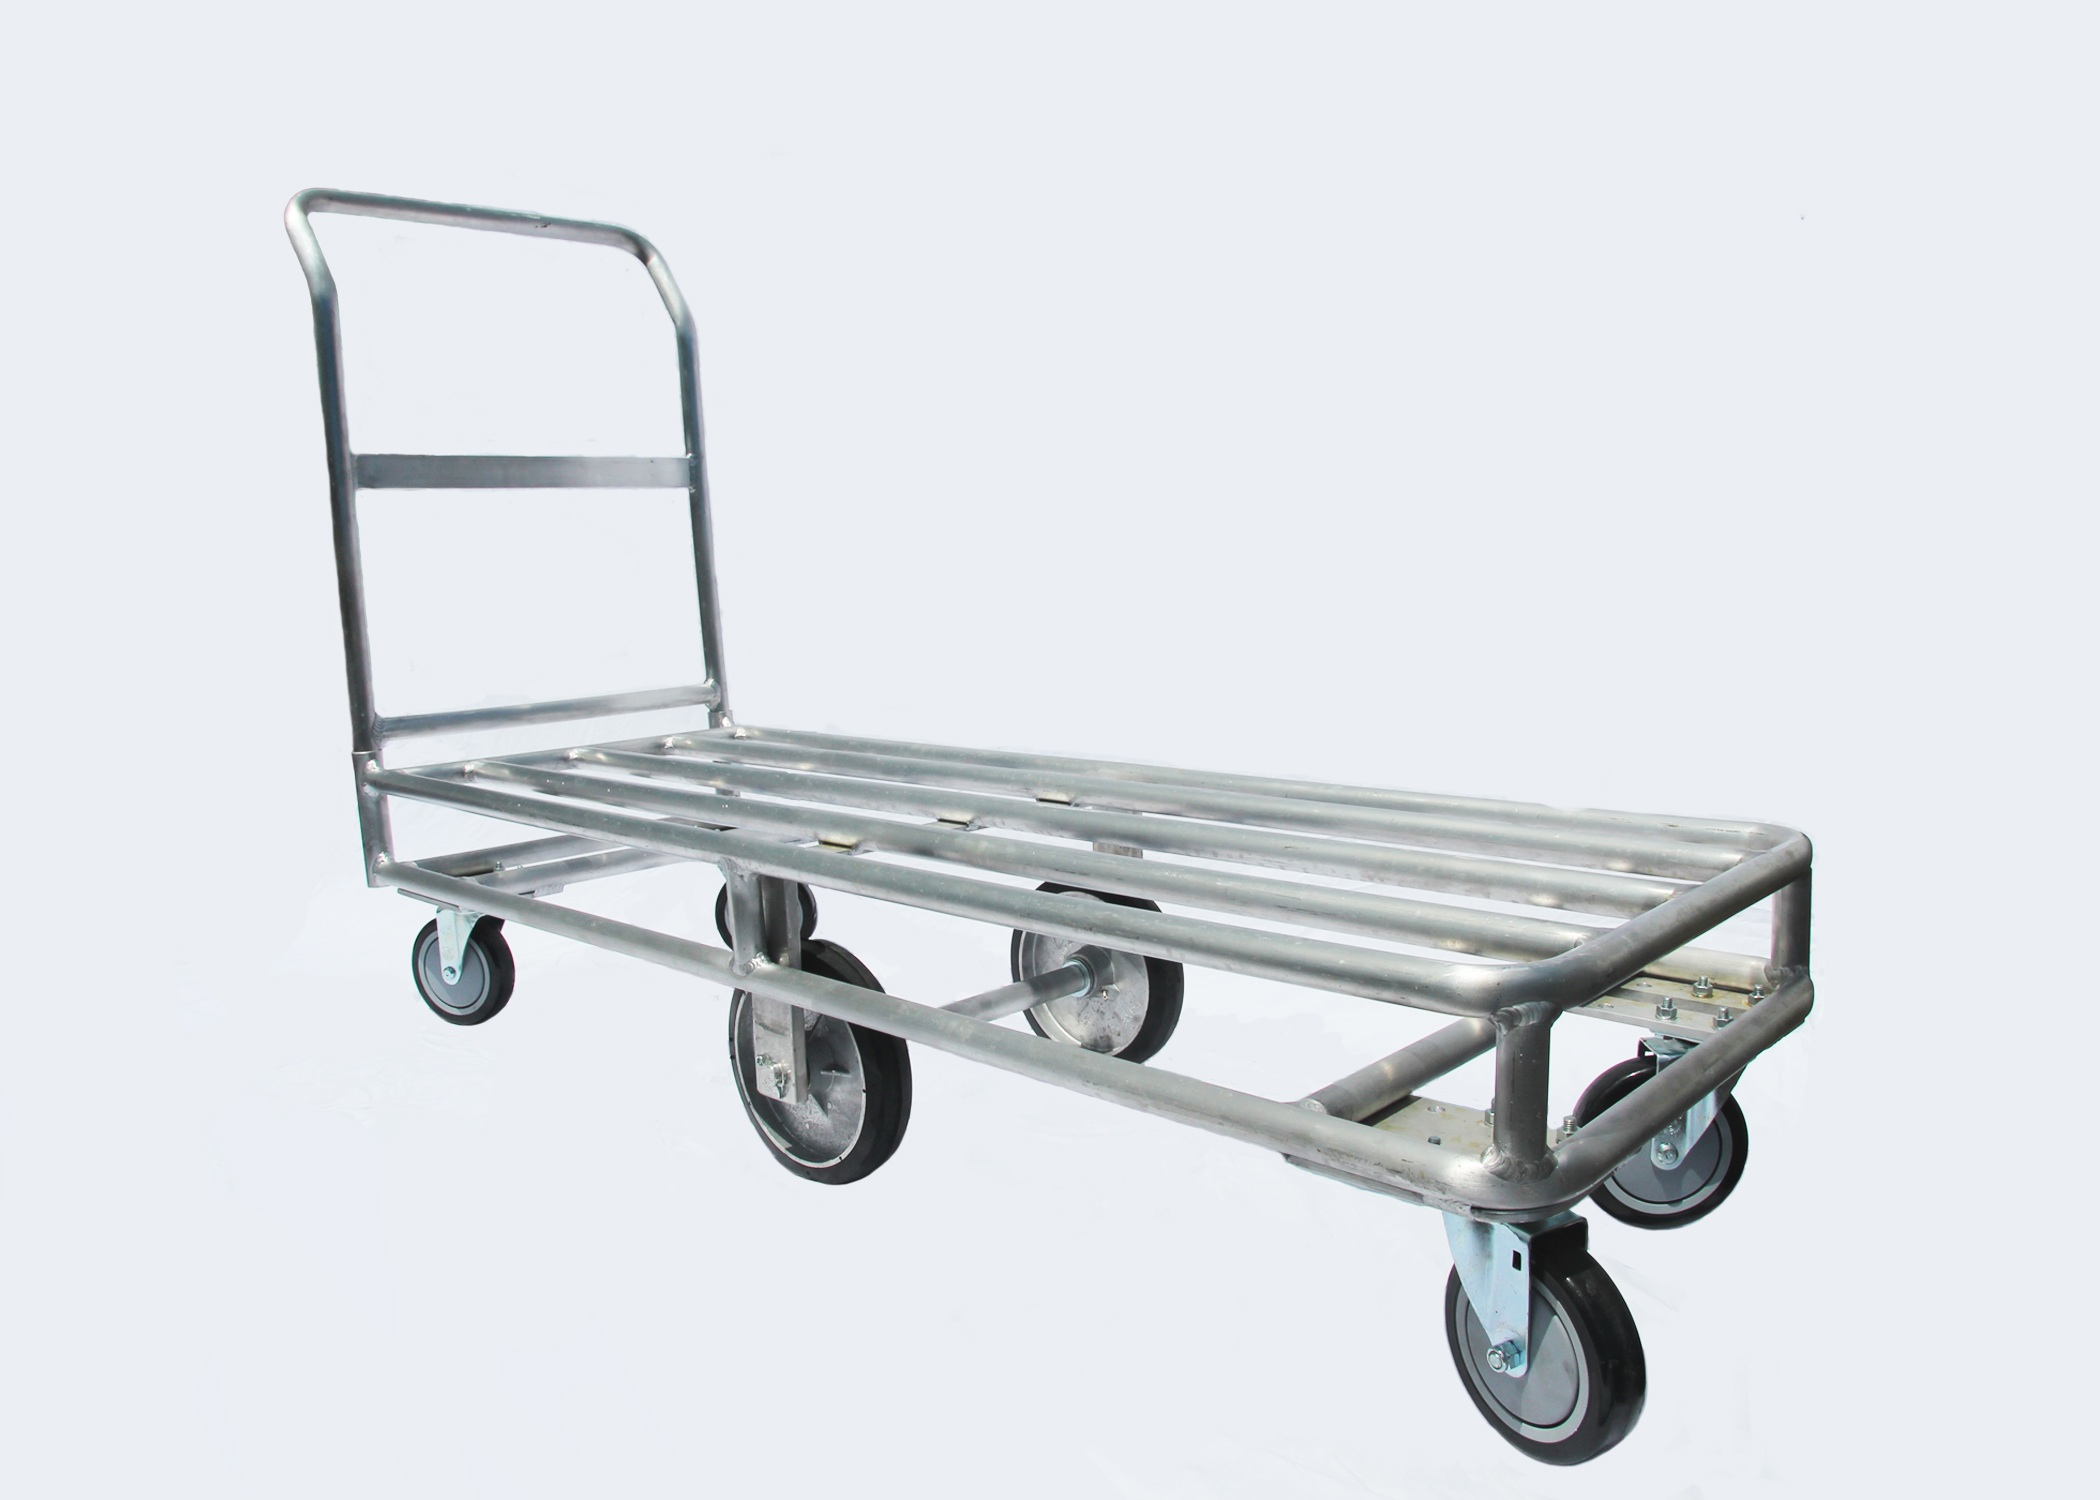 6 Wheel Carts Aluminum Steel Stocking Carts